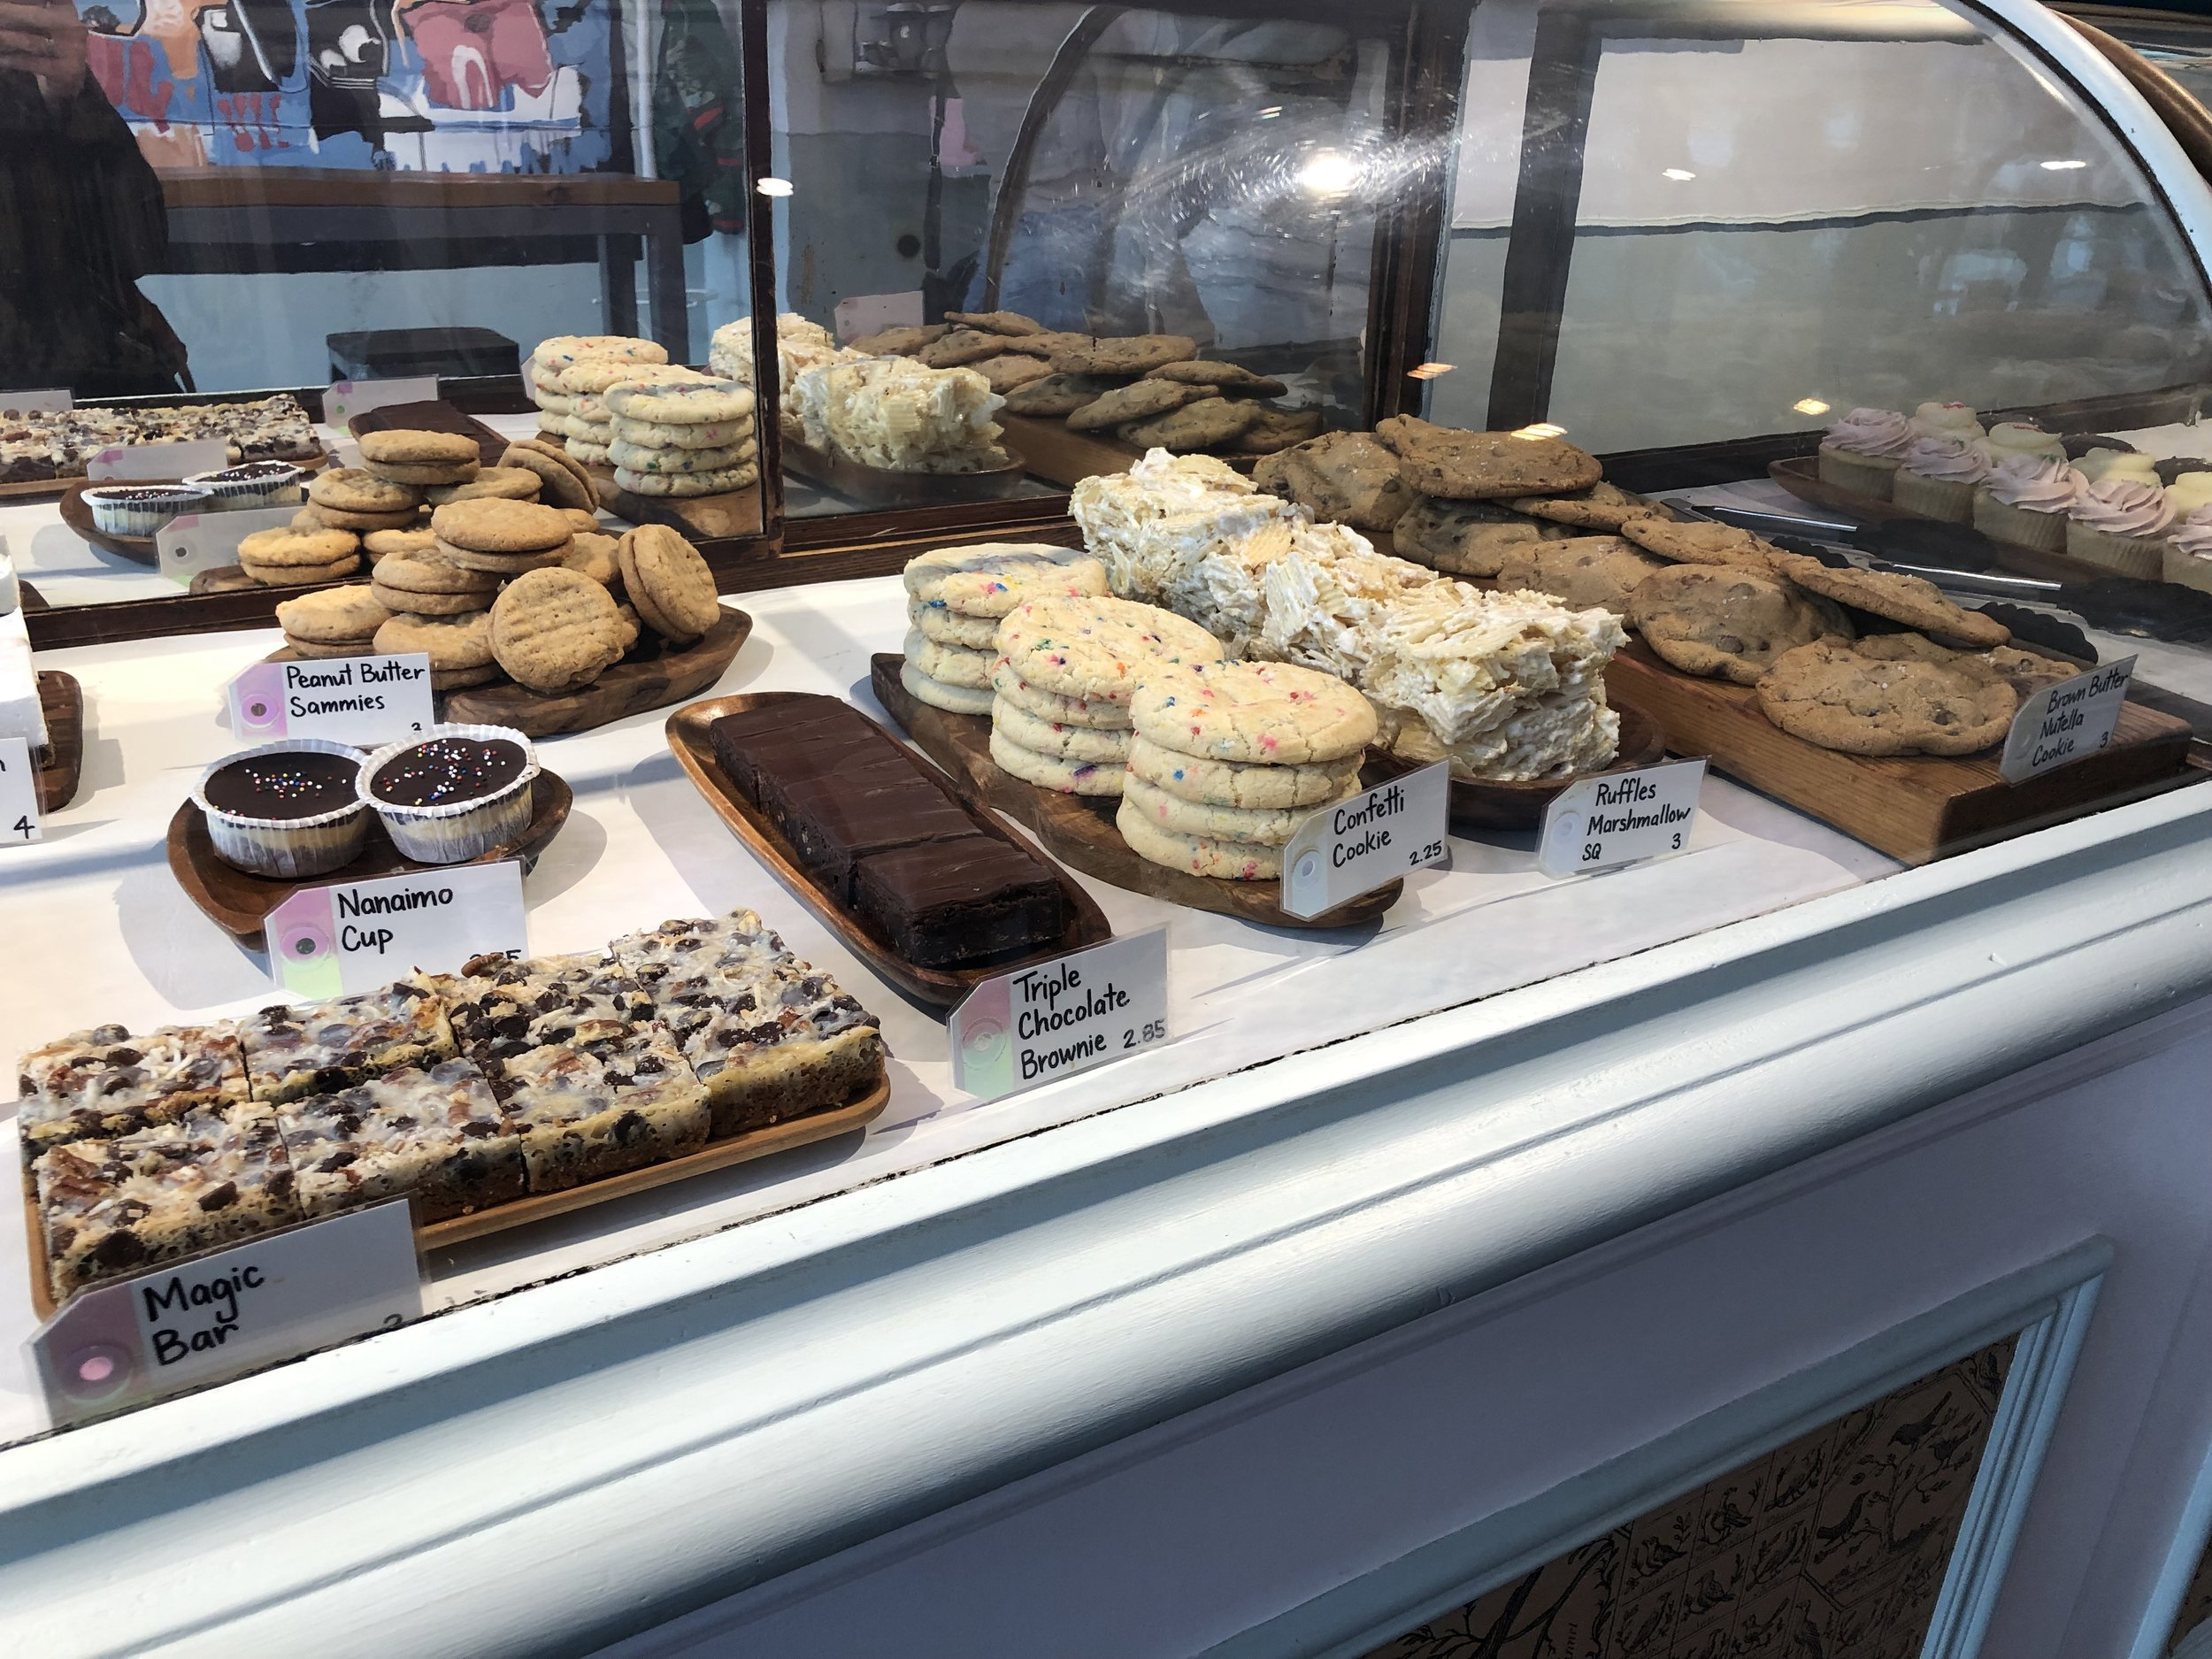 The wide array of treats on display